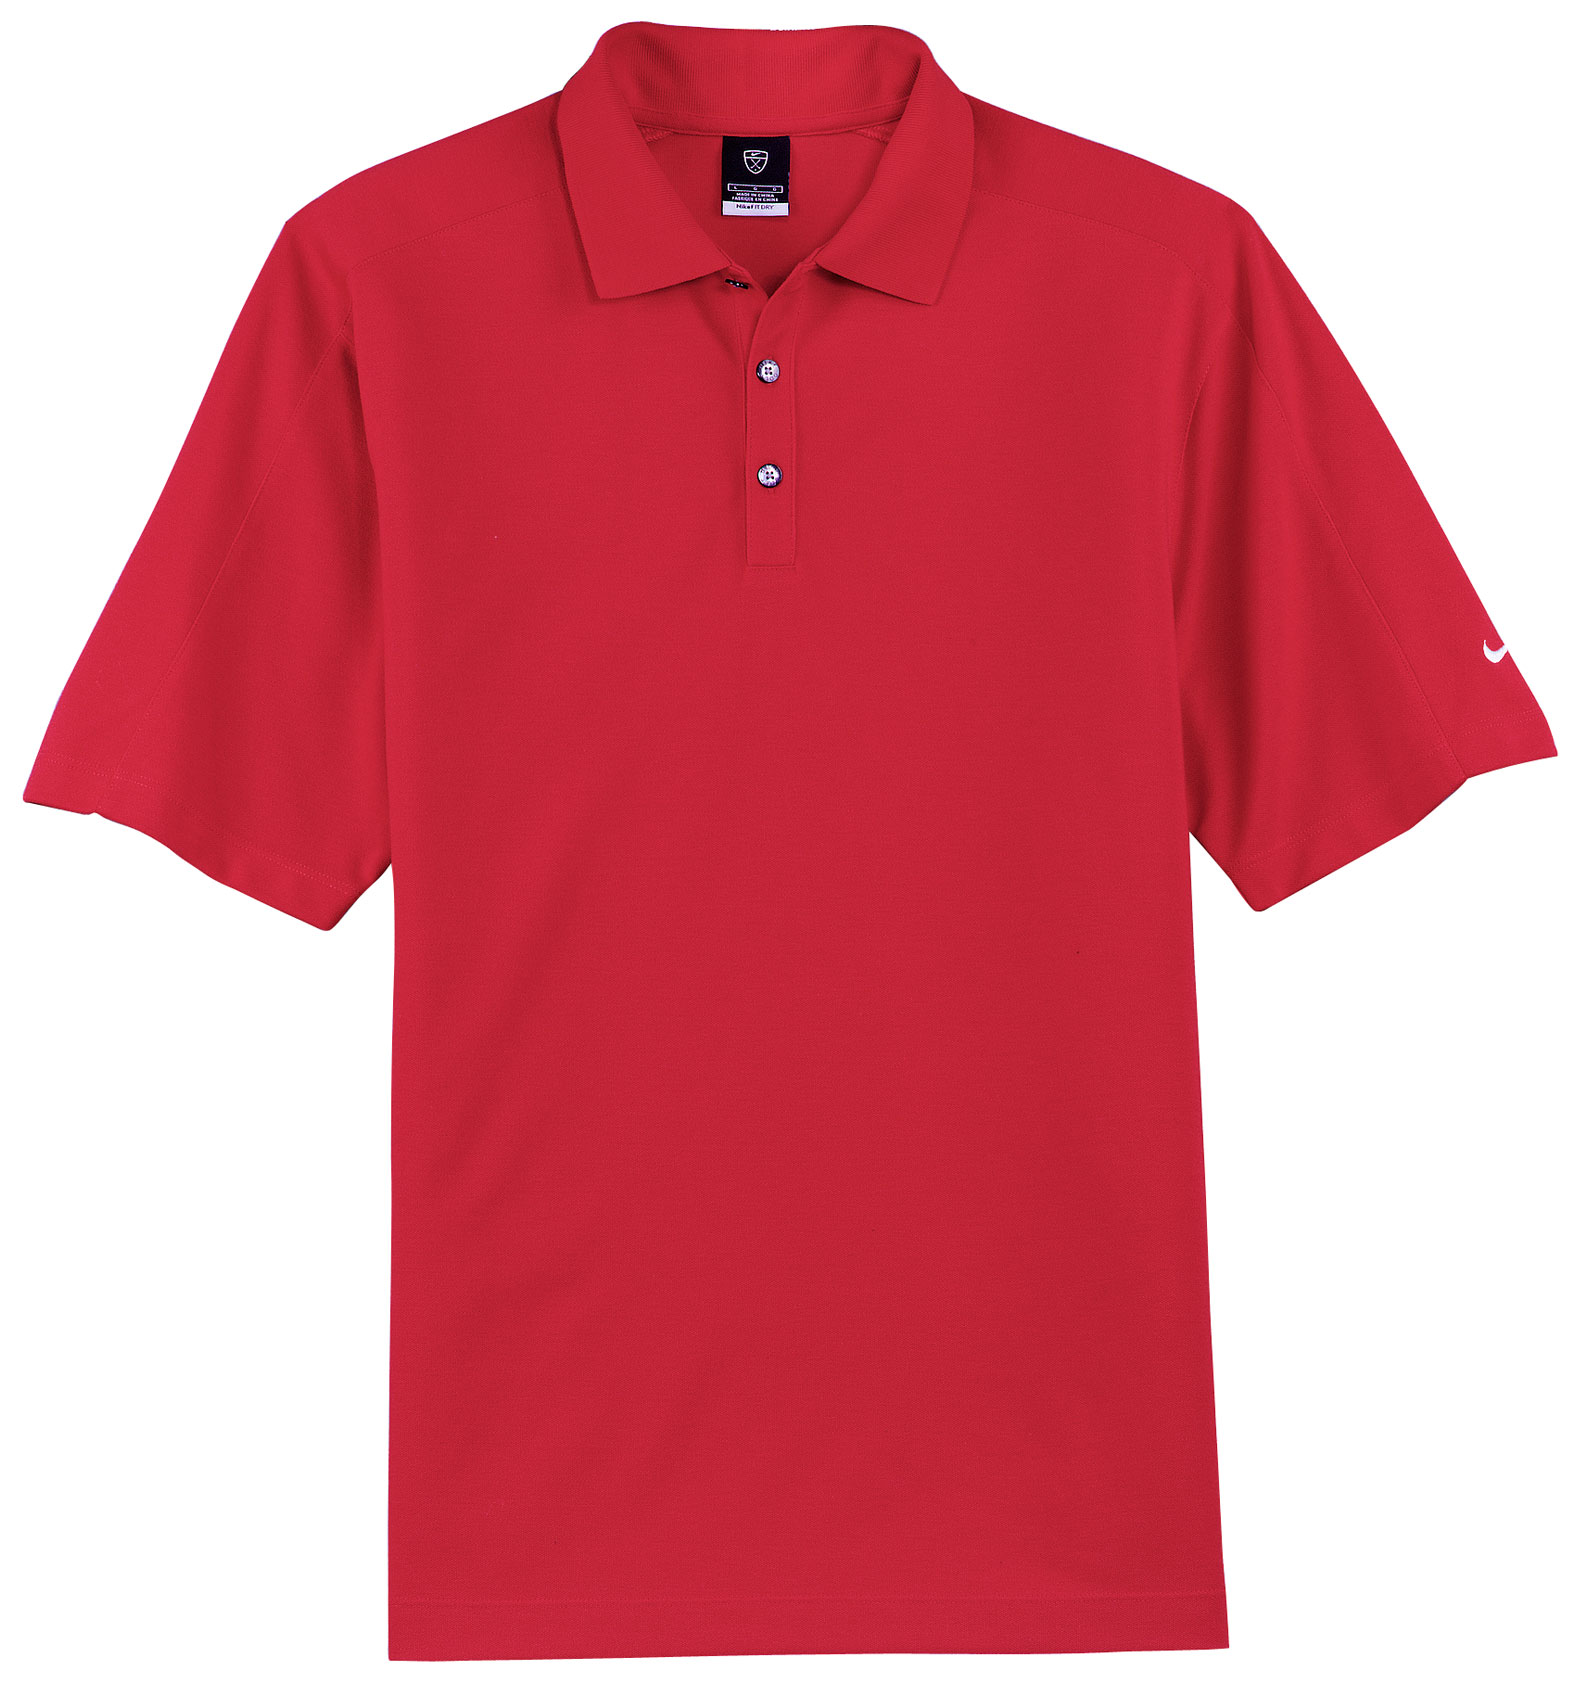 Nike Golf Mens Dri-FIT Pique II Polo